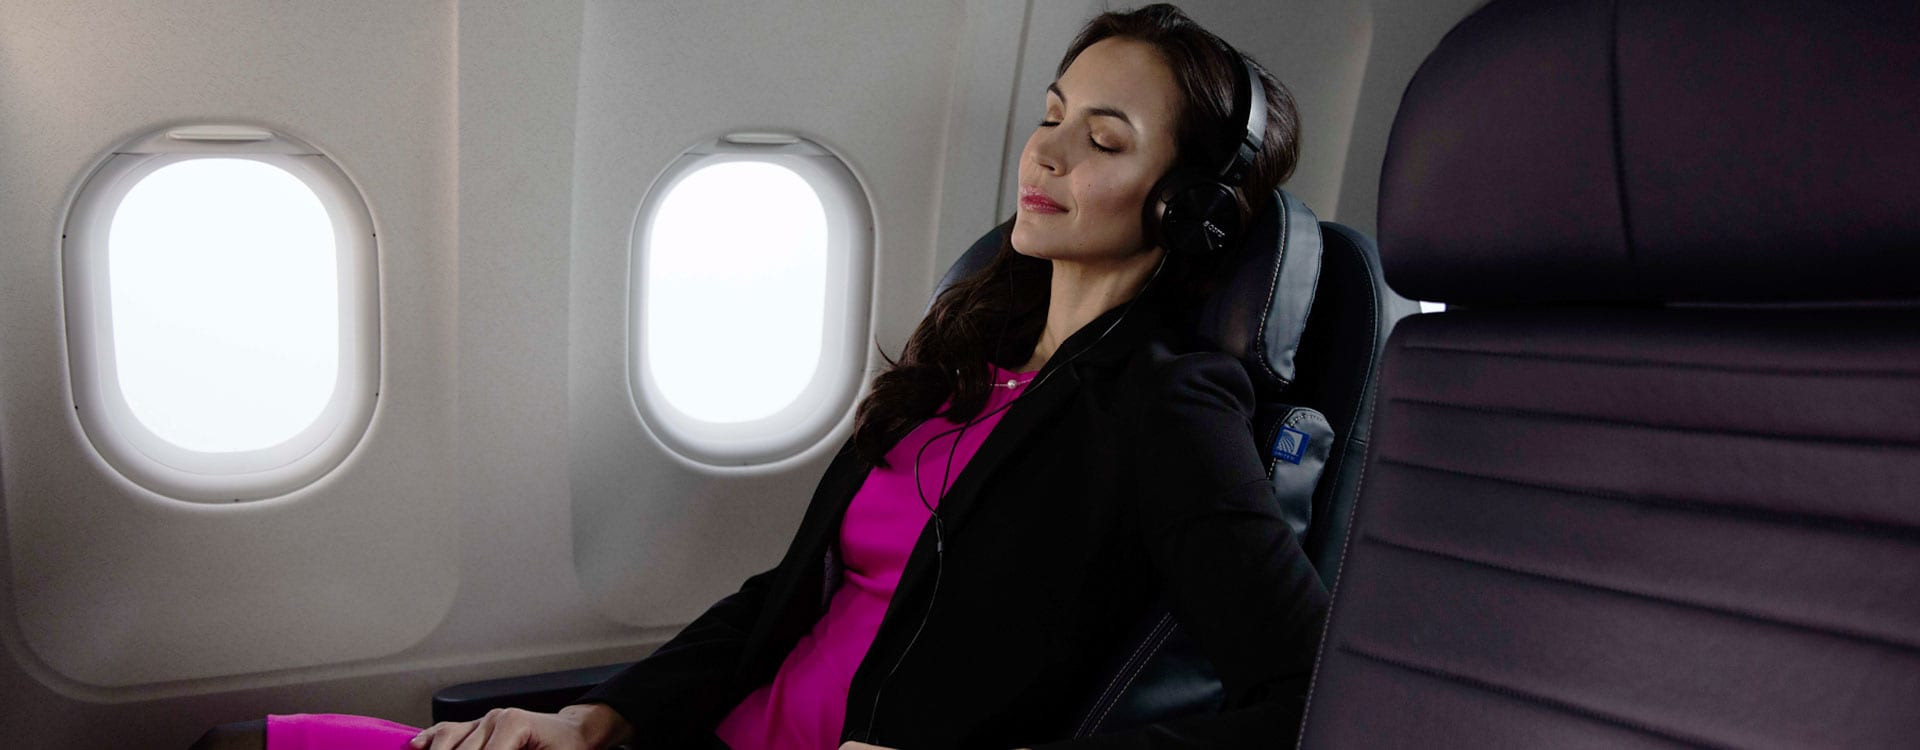 Stretch out and relax with premium cabin service in United Business®